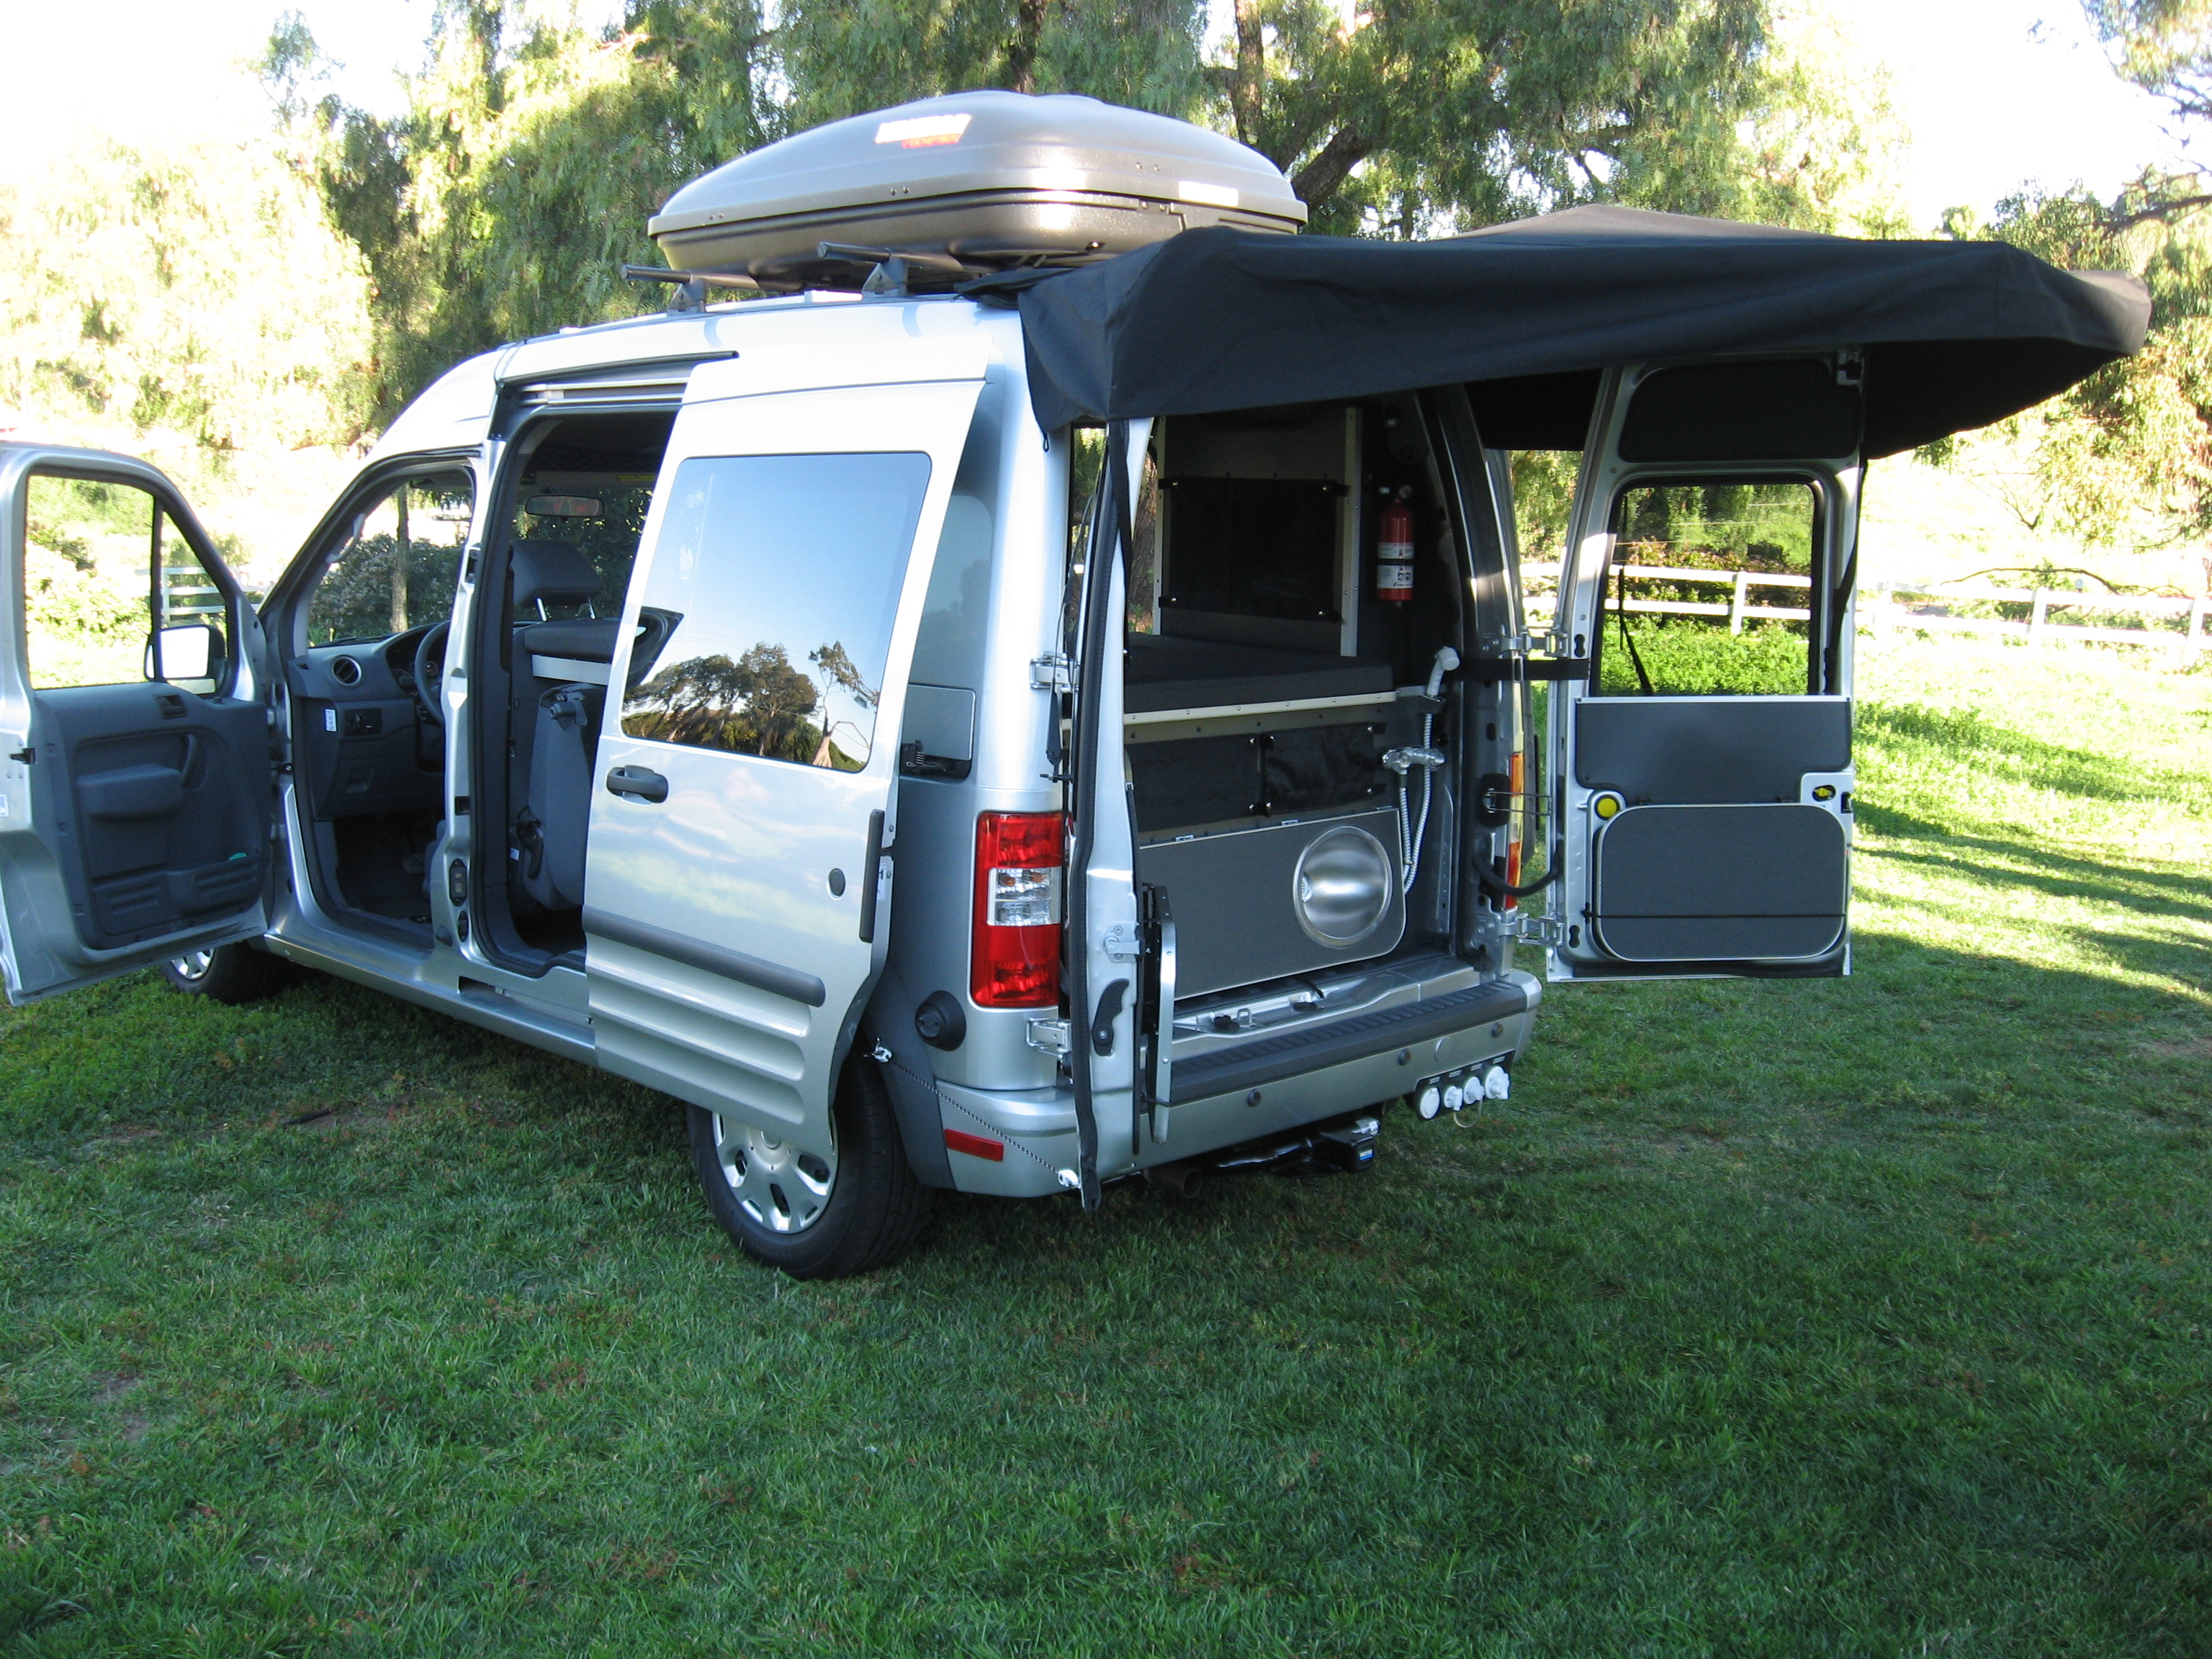 Topworldauto Photos Of Ford Connect Photo Galleries 2015 Transit Van Camper Conversion 2010 With Removable Rear Awning